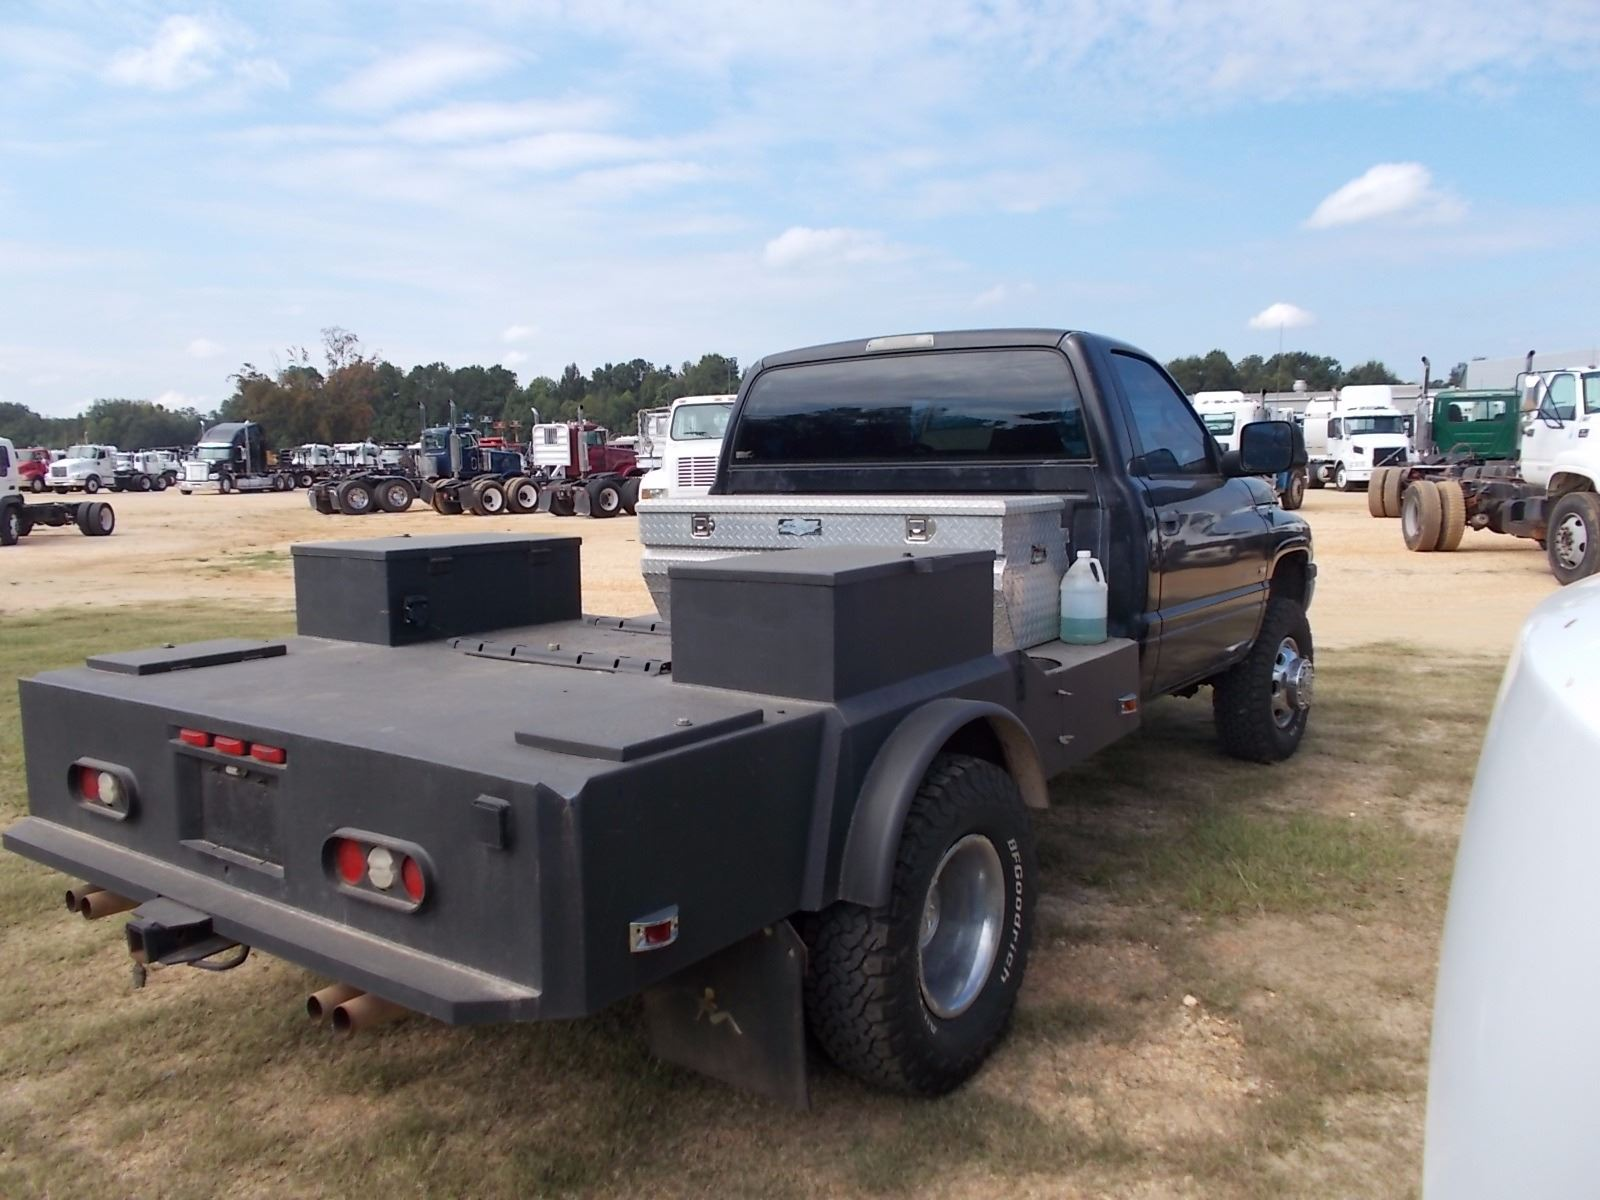 2001 DODGE RAM 3500 FLATBED TRUCK, VIN/SN:3B6MC36591M561197 - V8 GAS ENG,  A/T, 8' FLATBED BODY, TOOL